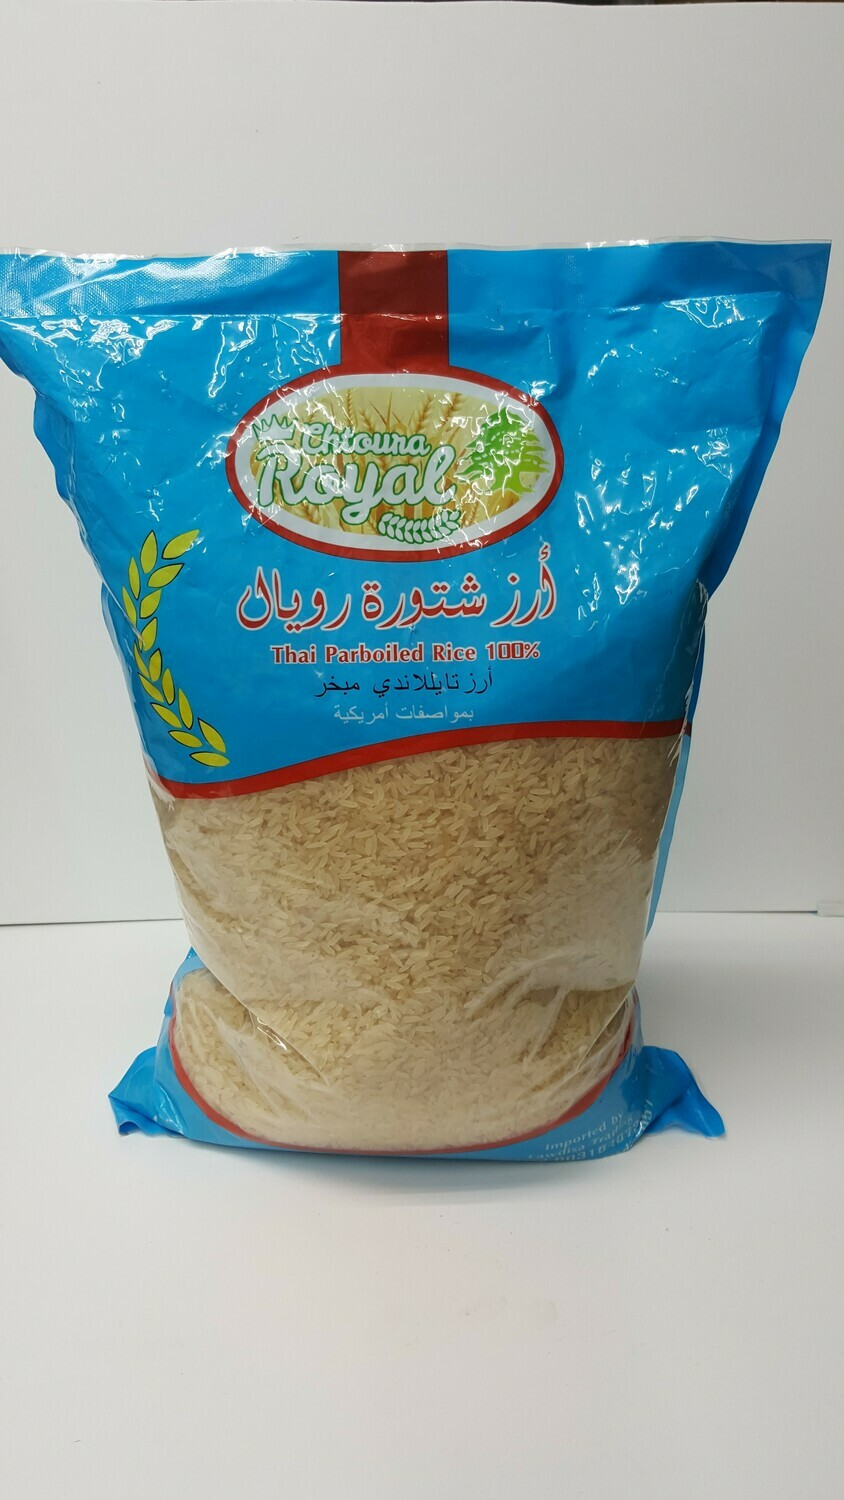 Thai Parboiled Rice CHTOUNA RAYAL 5Kg